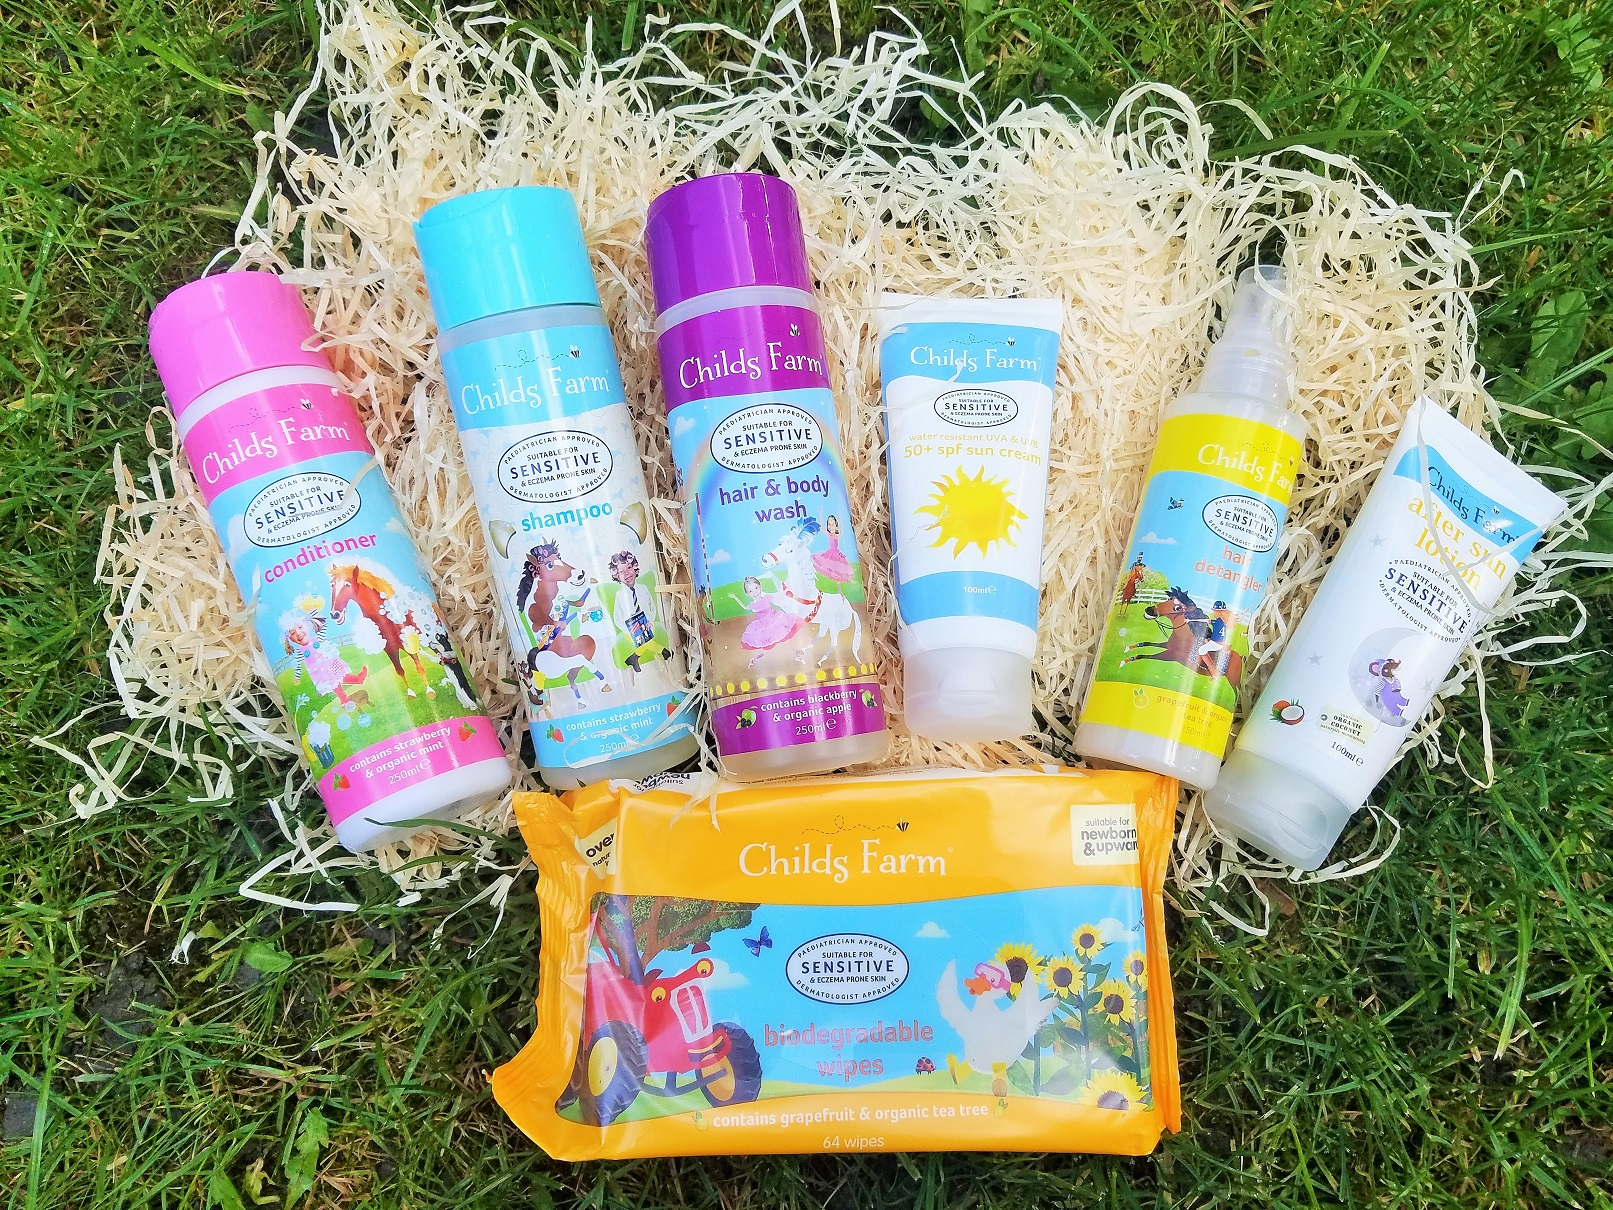 Childs Farm skin care and hair care products on hay blogcrush week 32